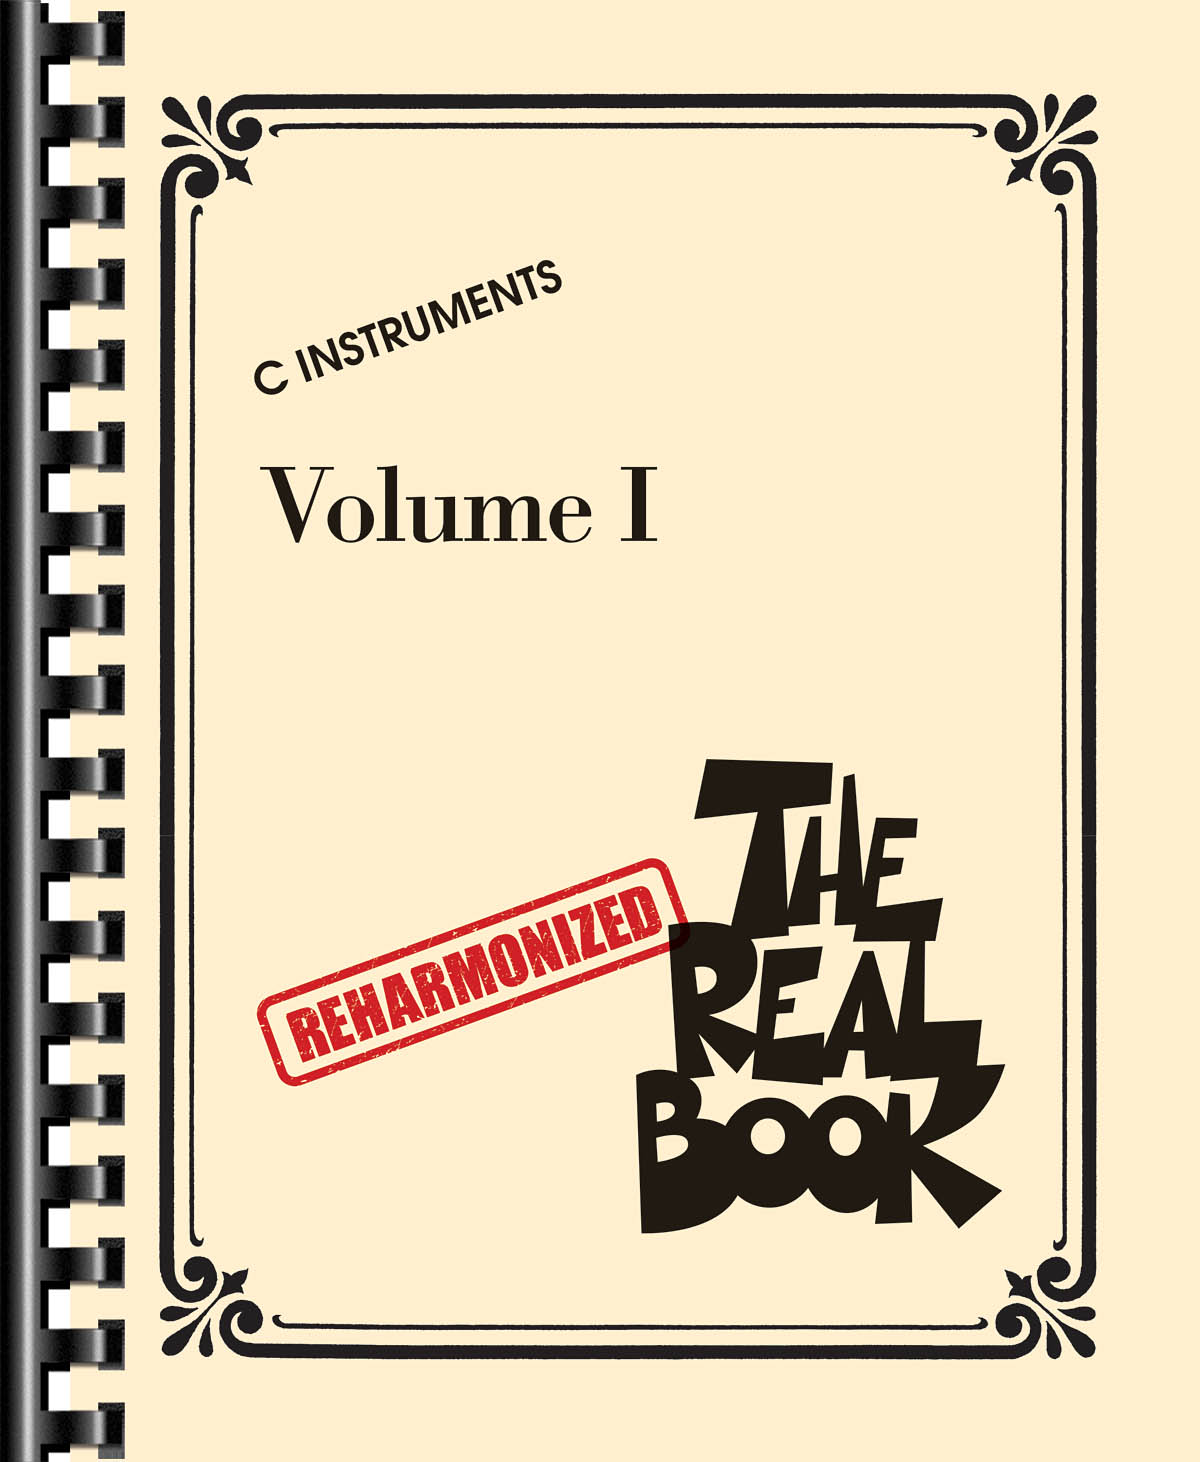 The Reharmonized Real Book – Volume 1